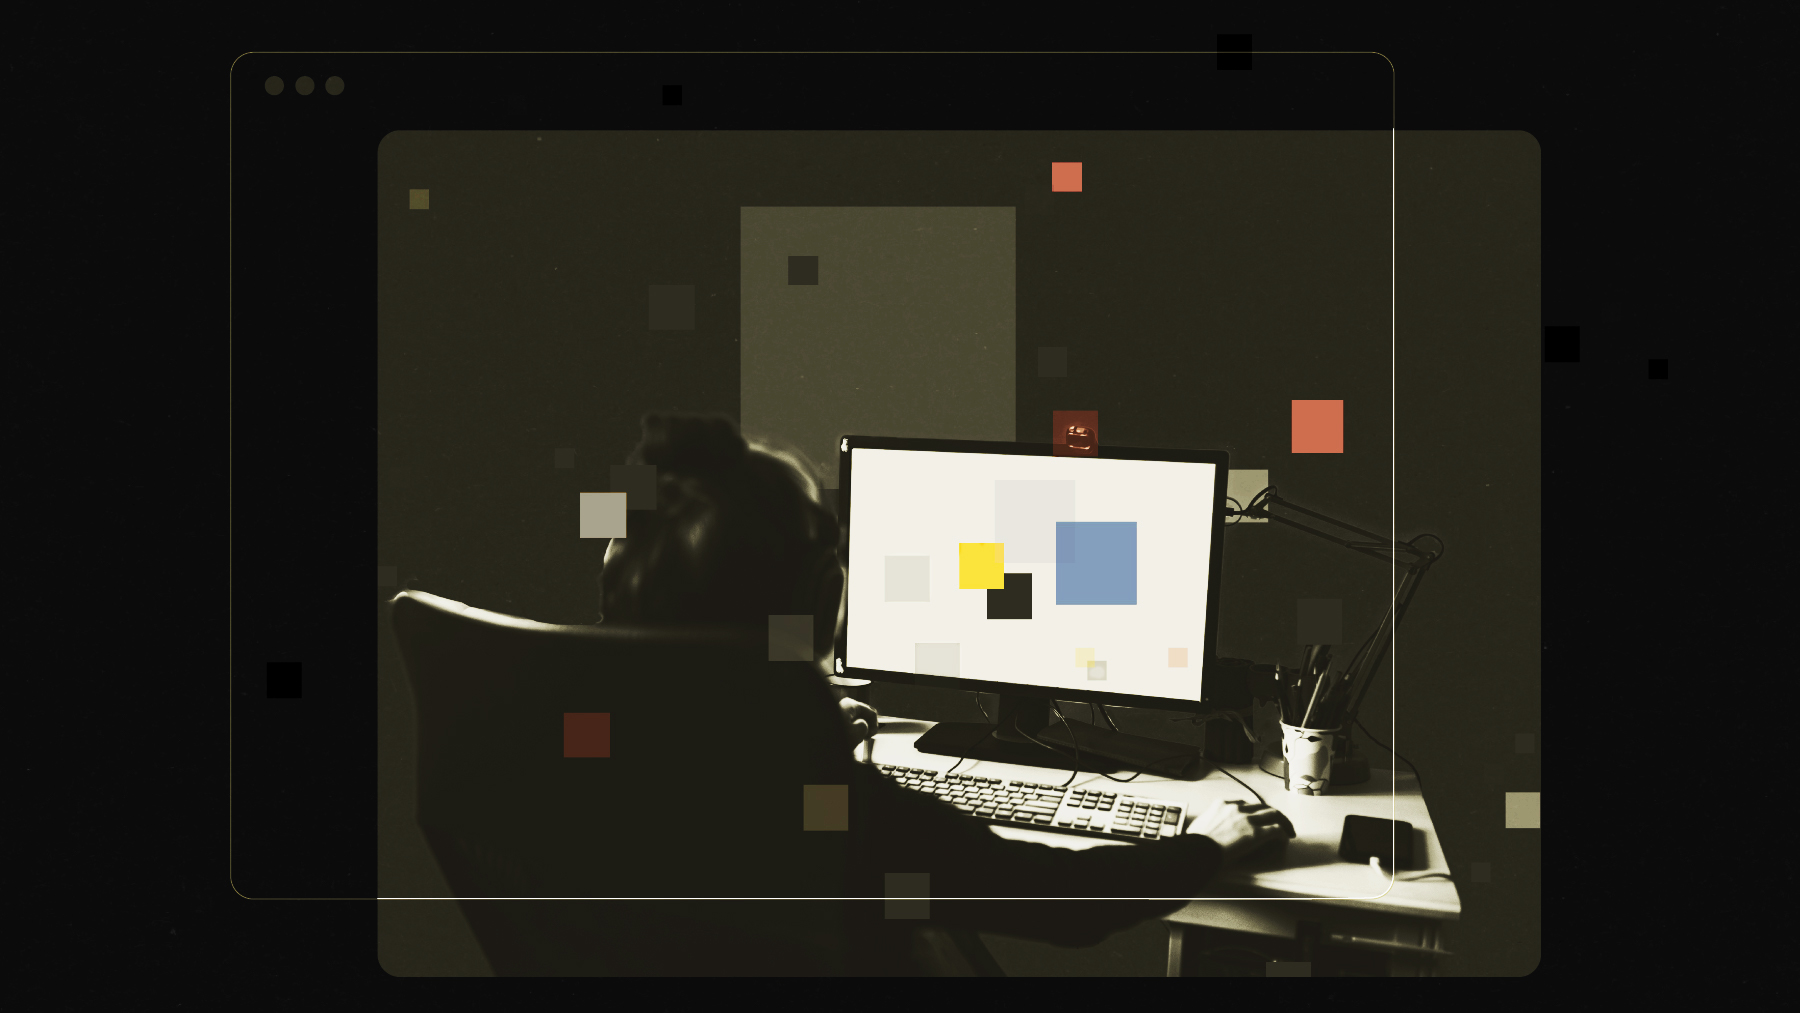 An illustration of a person sitting in a dark room looking at a desktop computer screen.